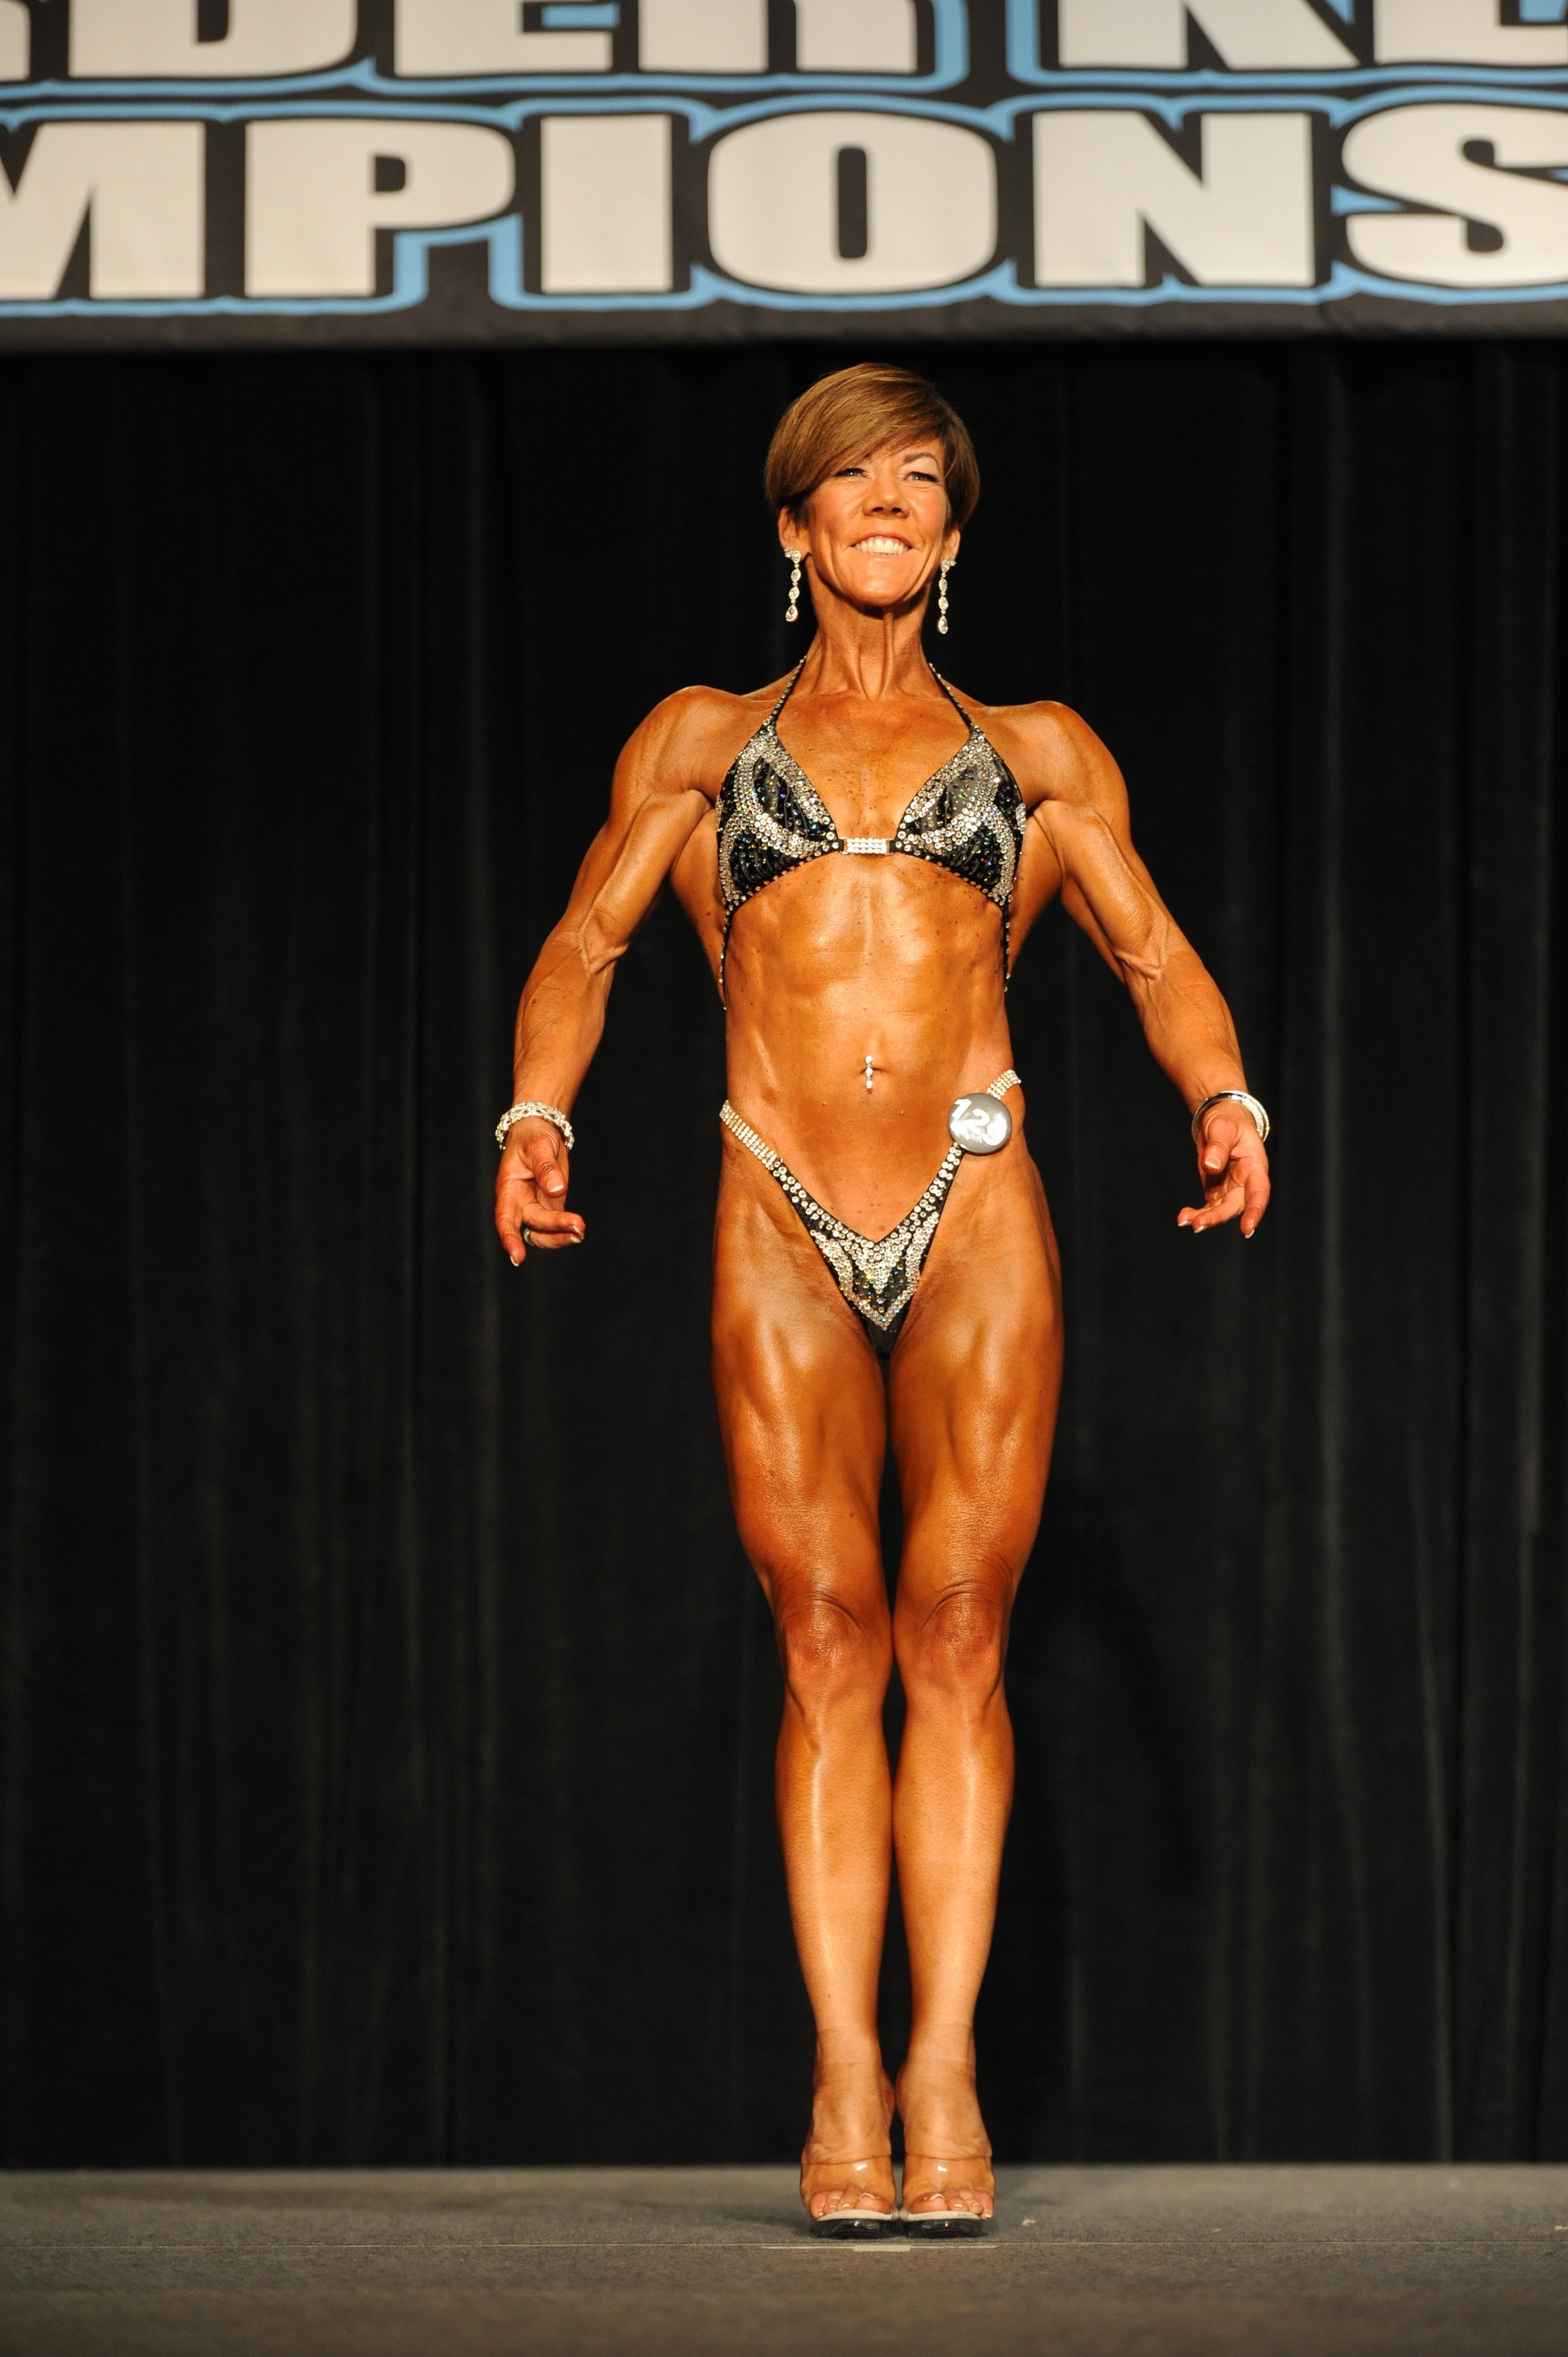 Leslie Petch Lee demonstrating her front pose and winning her latest NPC figure show